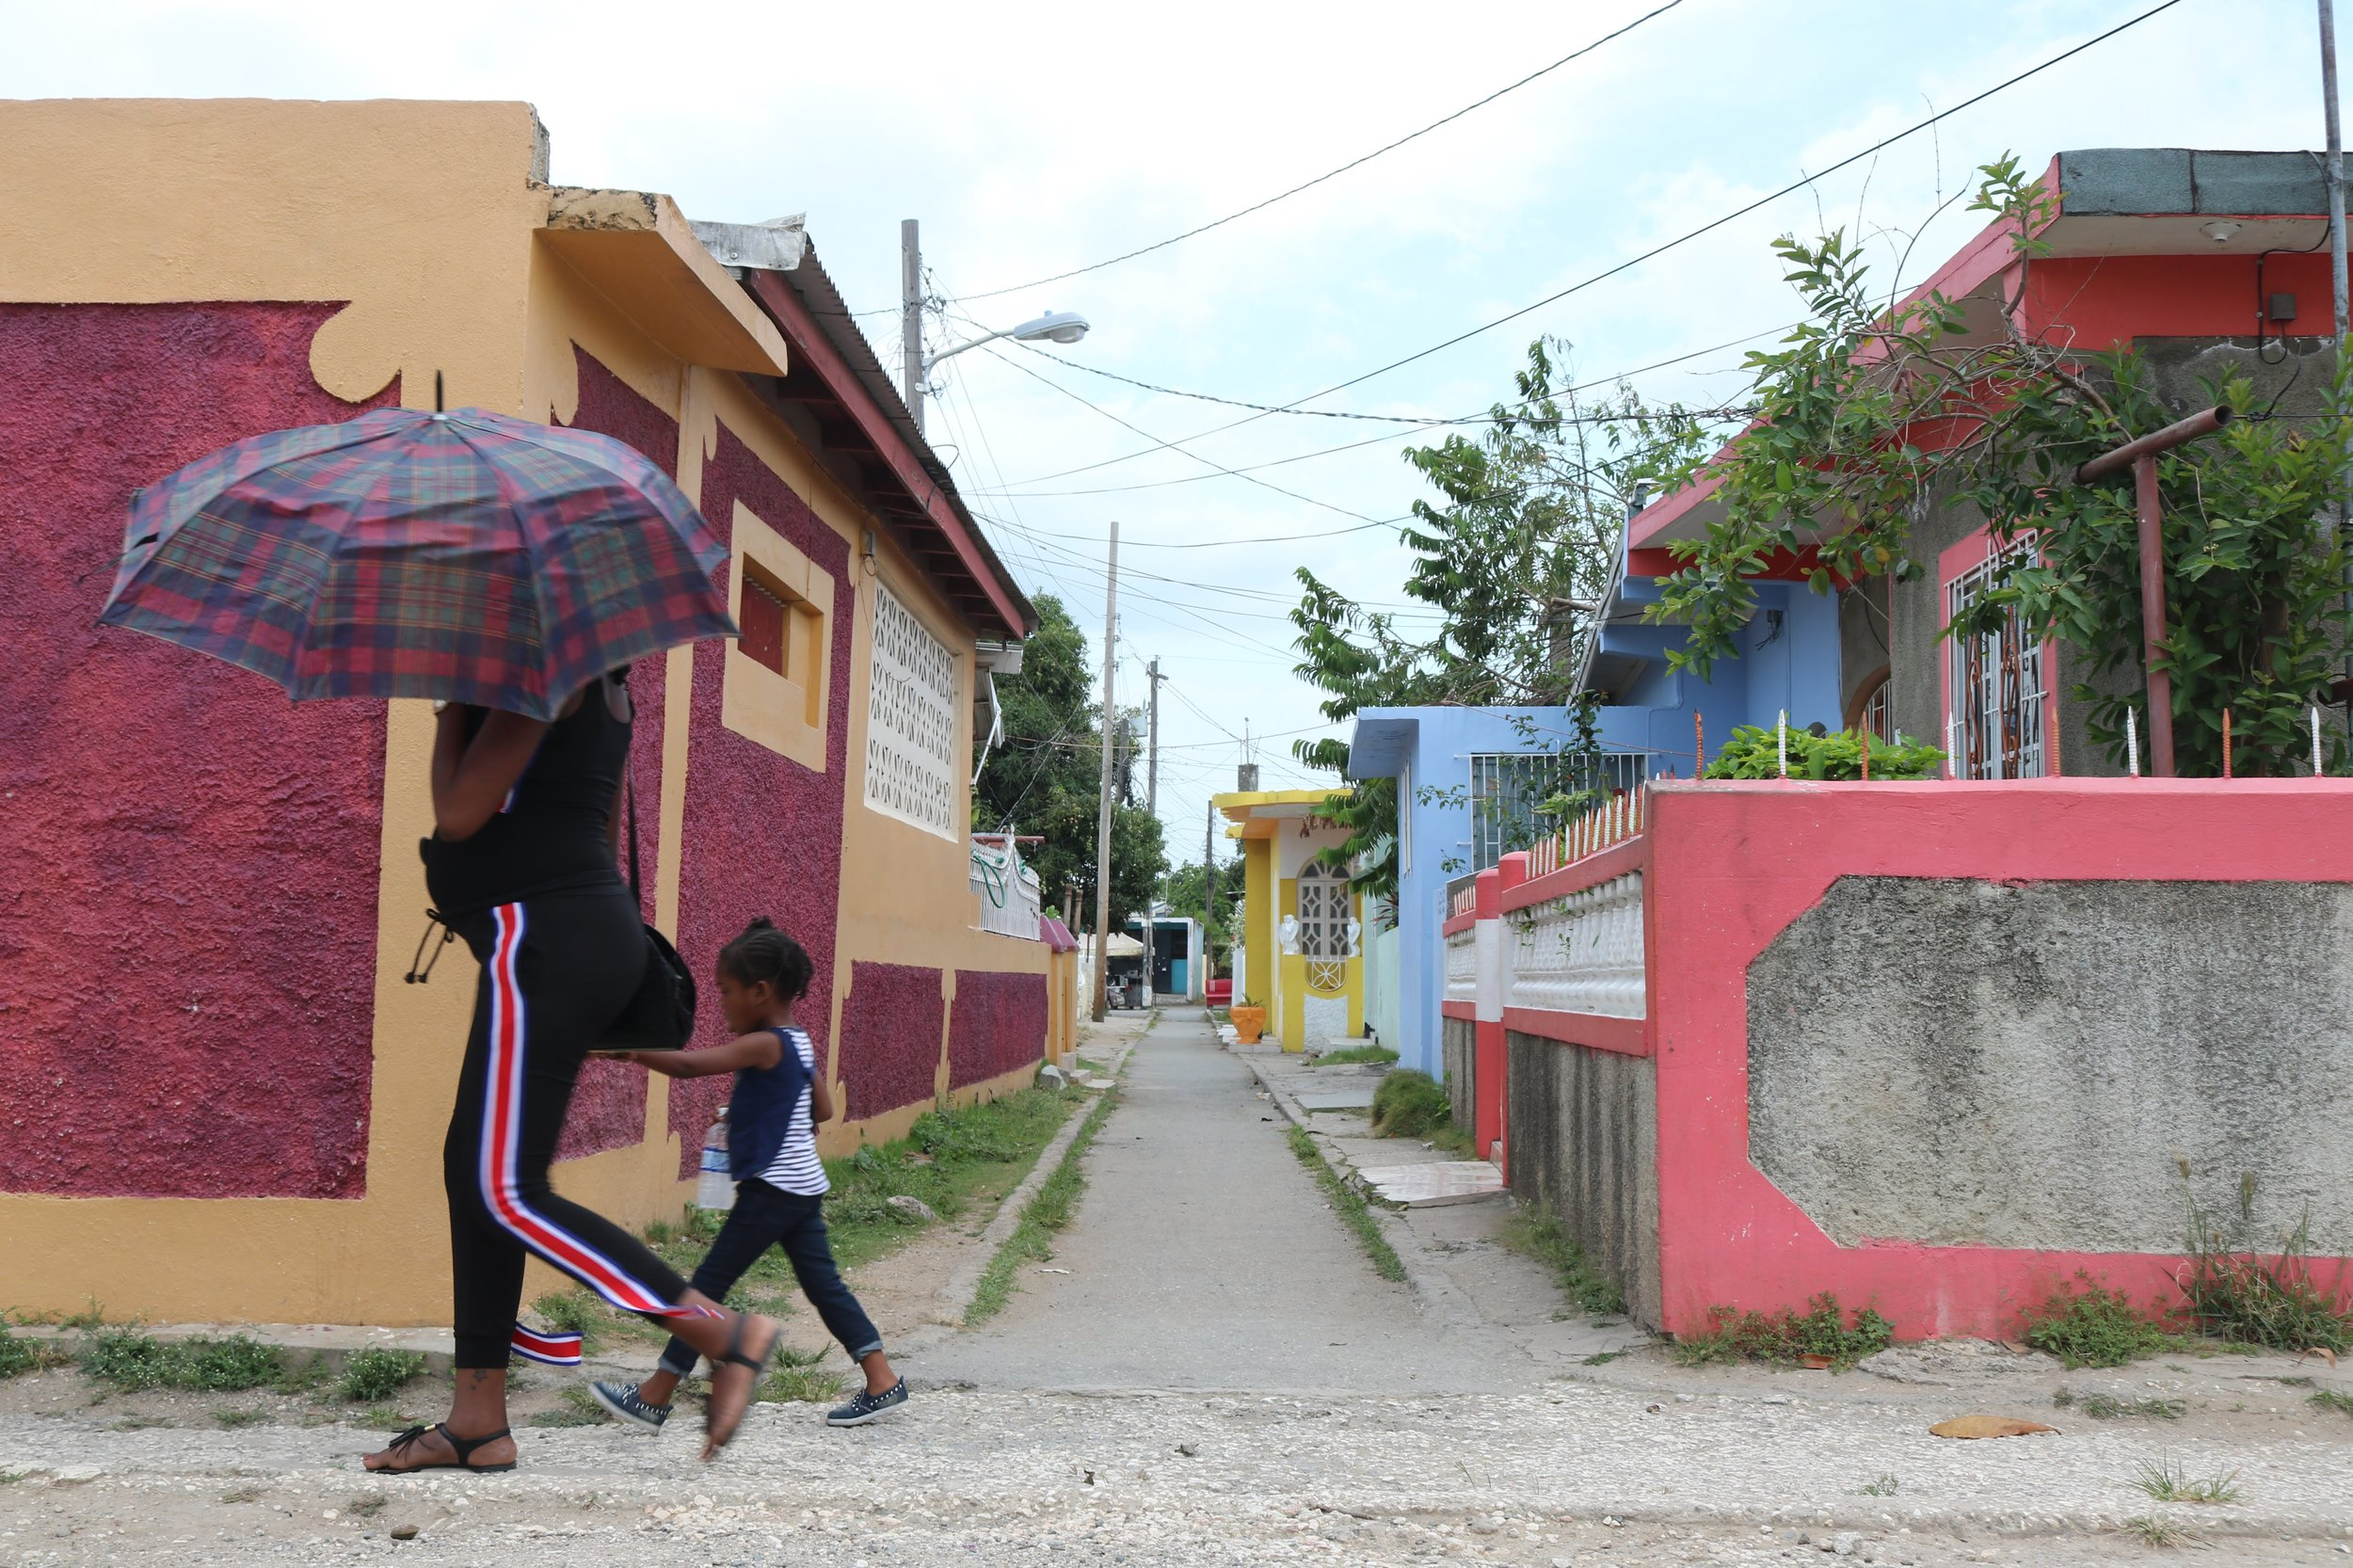 COMMUNITY - Dela Vega City is one of six districts in Spanish Town central. It has a population of approximately 7,000 people. The community was built on 23 acres of land to help relieve the acute housing shortage in Spanish Town. All of the homes in the community are made of concrete and blocks.